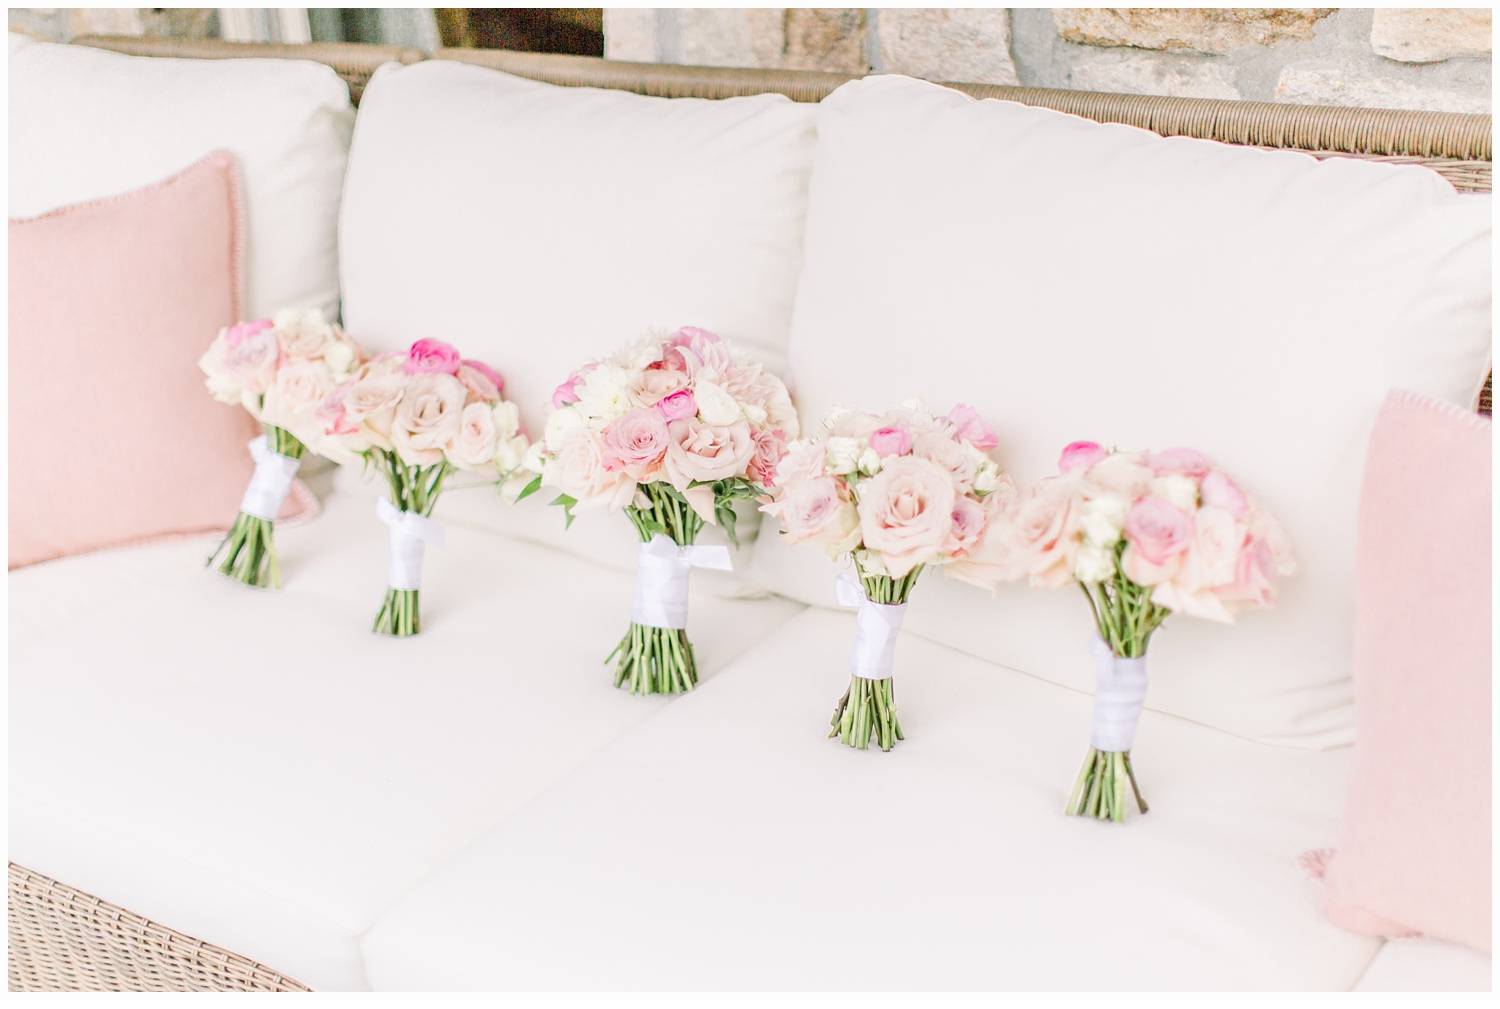 wedding bouquets on couch